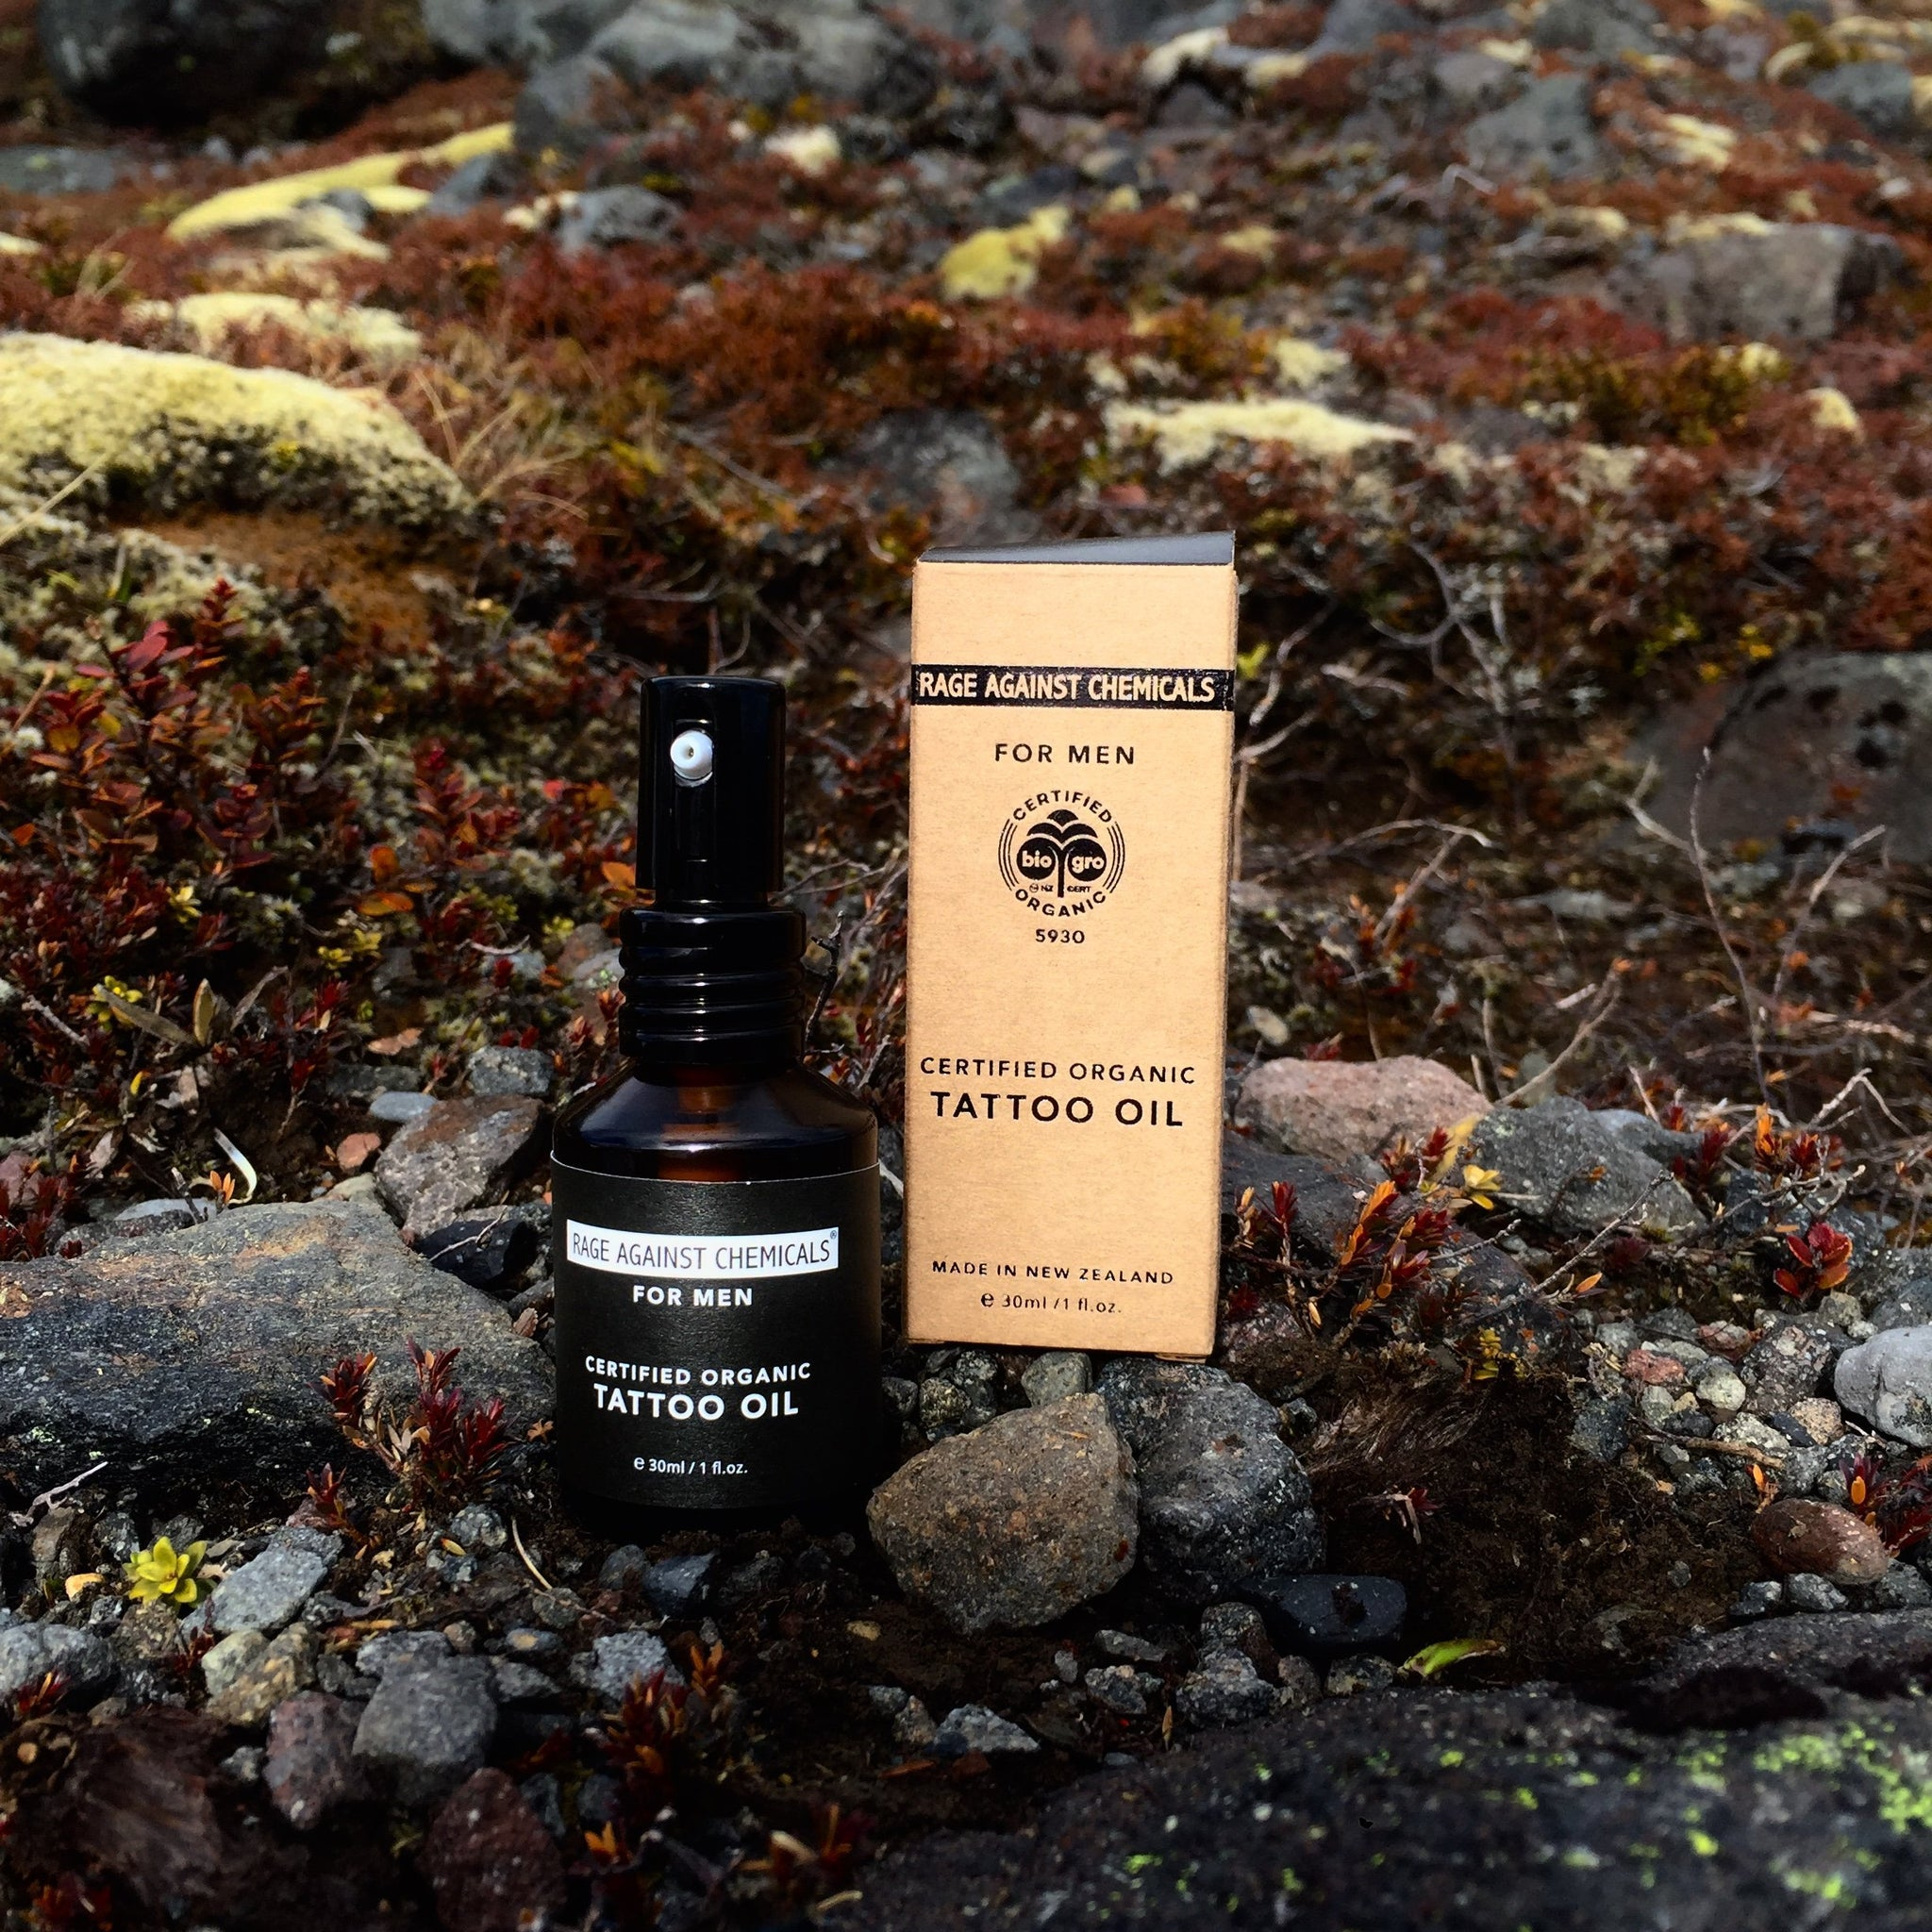 Tattoo Oil For Men - Certified Organic - Rage Against Chemicals